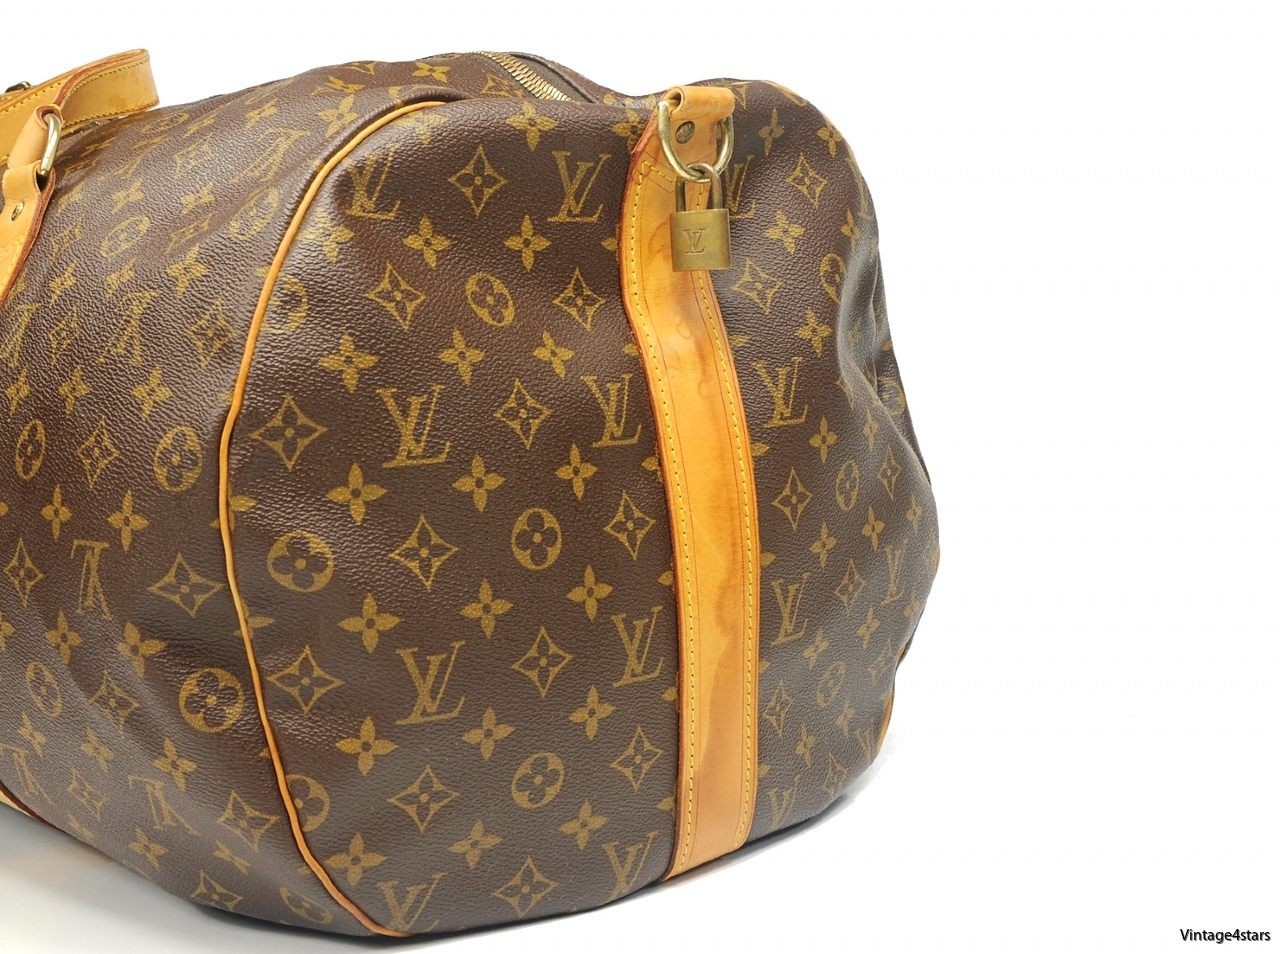 LOUIS VUITTON SAC POLOCHON 70 7